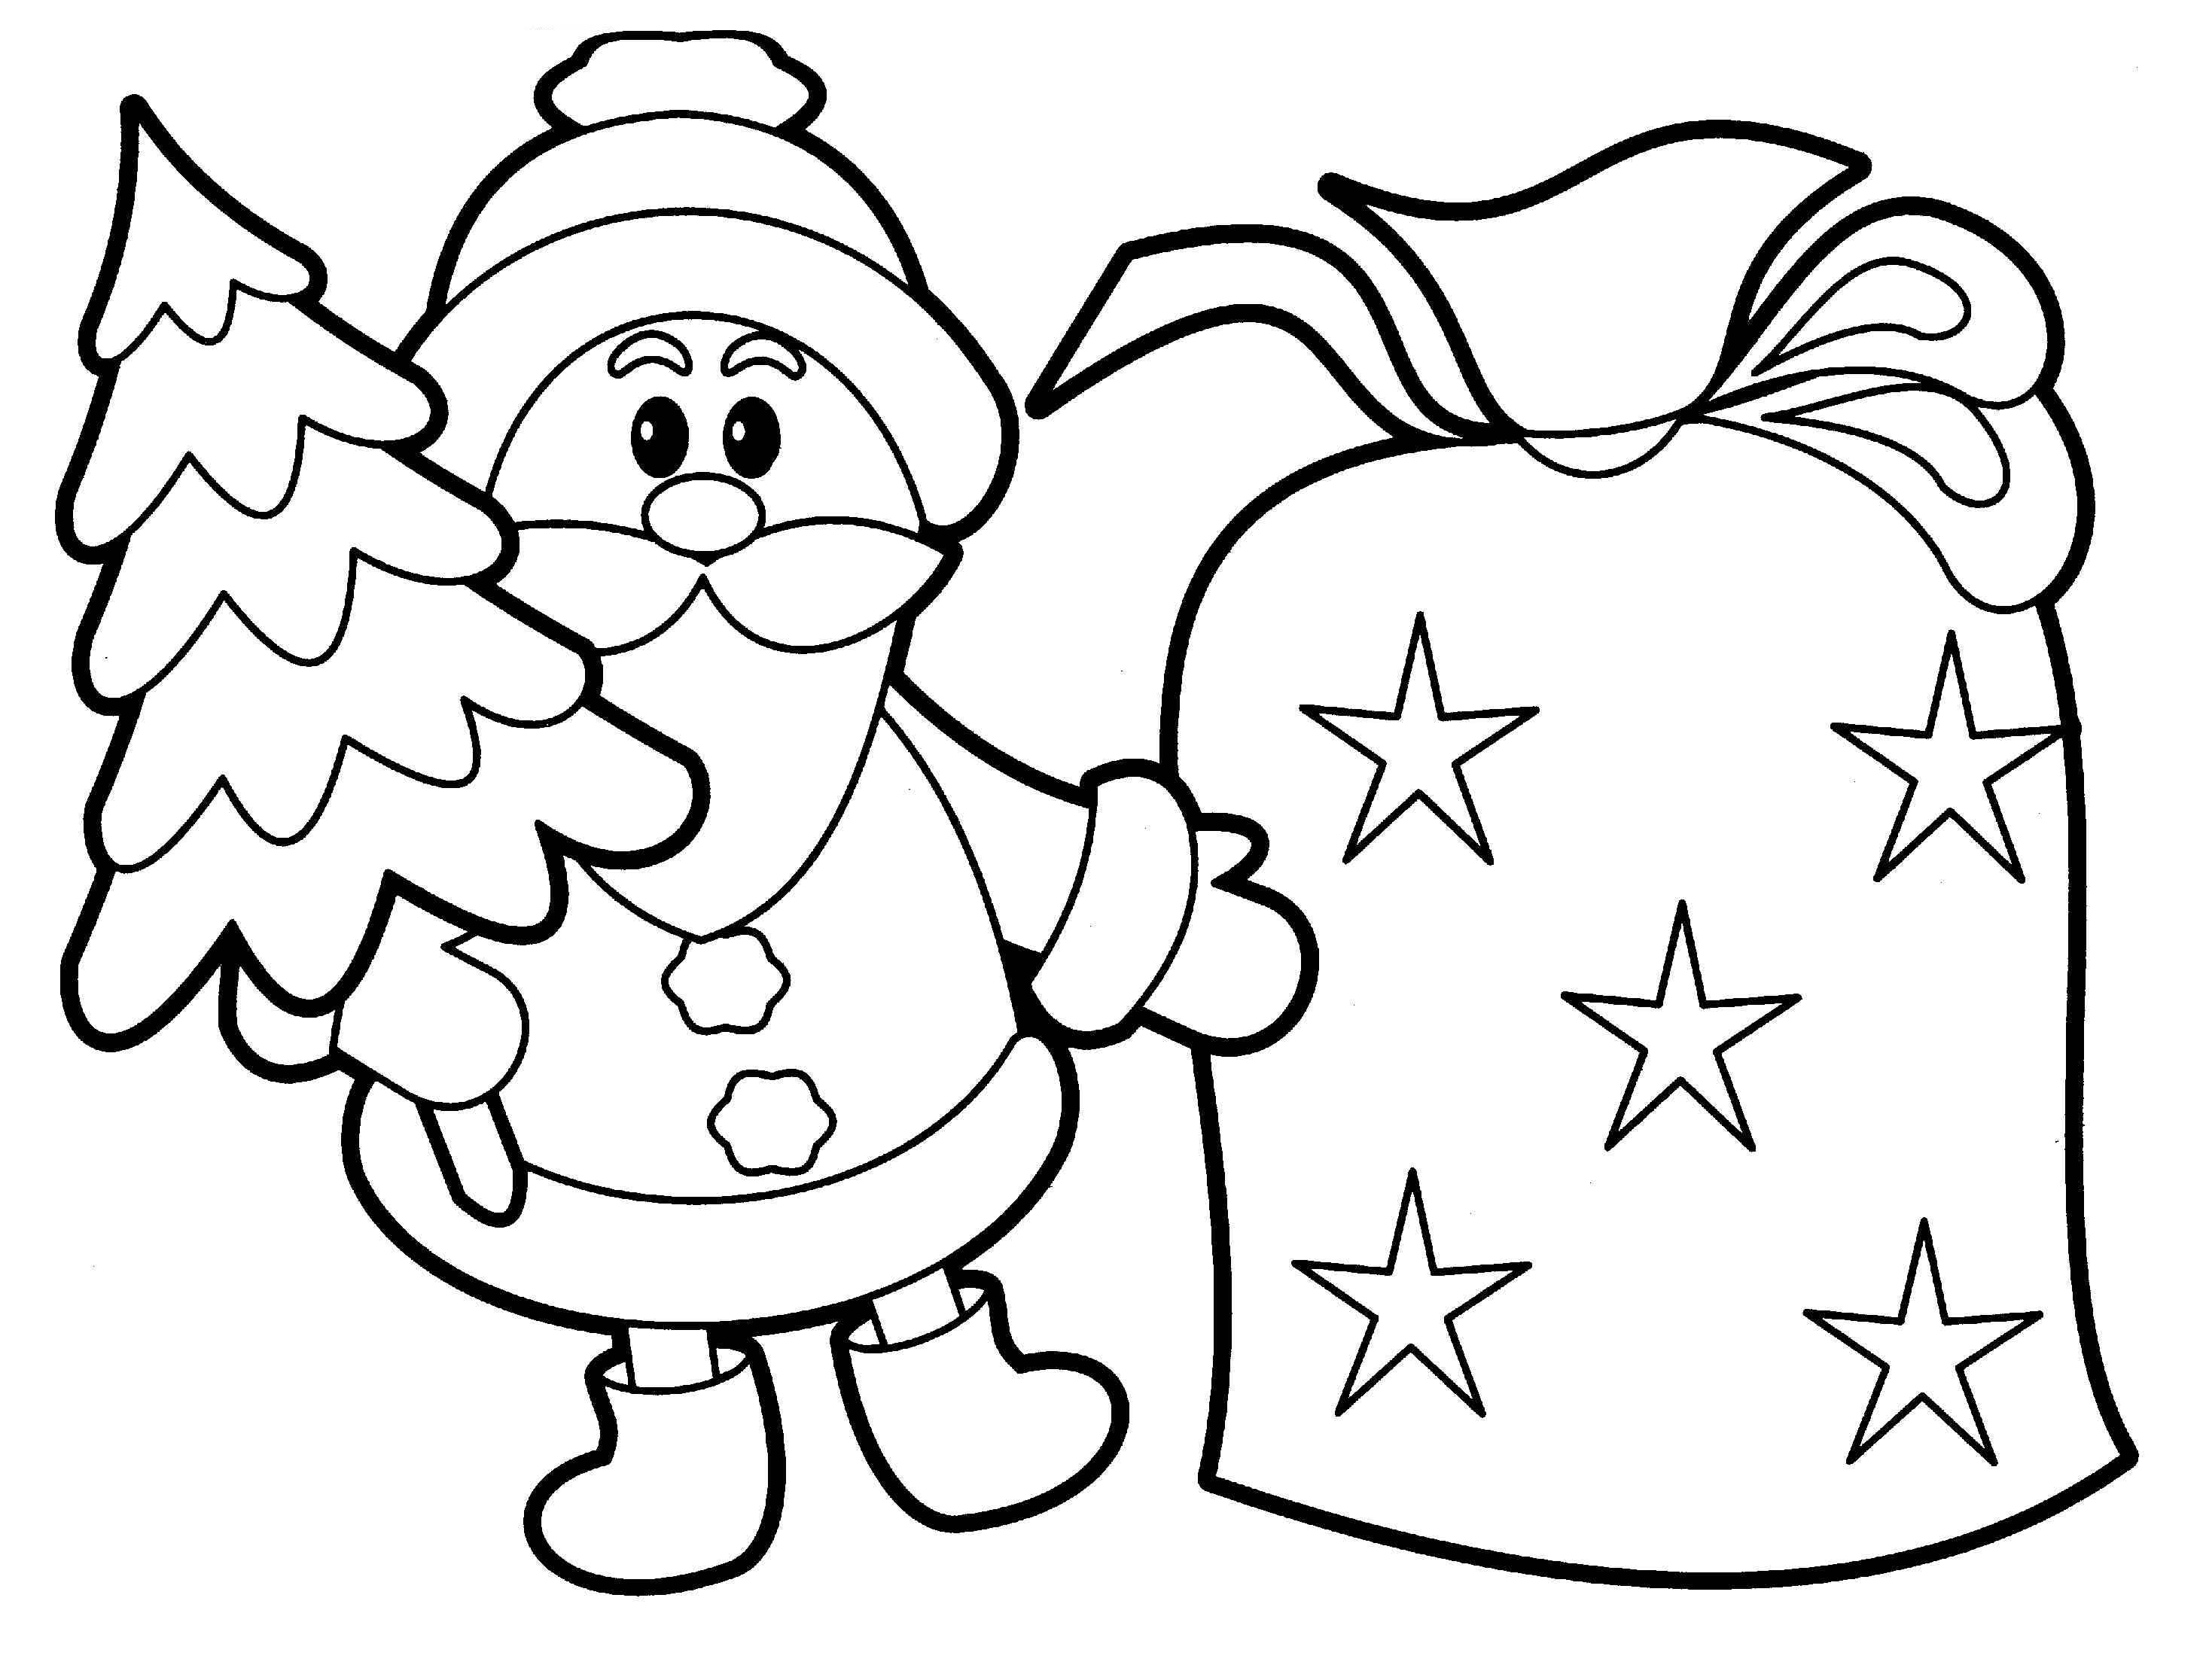 Santa Claus Coloring Games With Pages Gallery Free Books